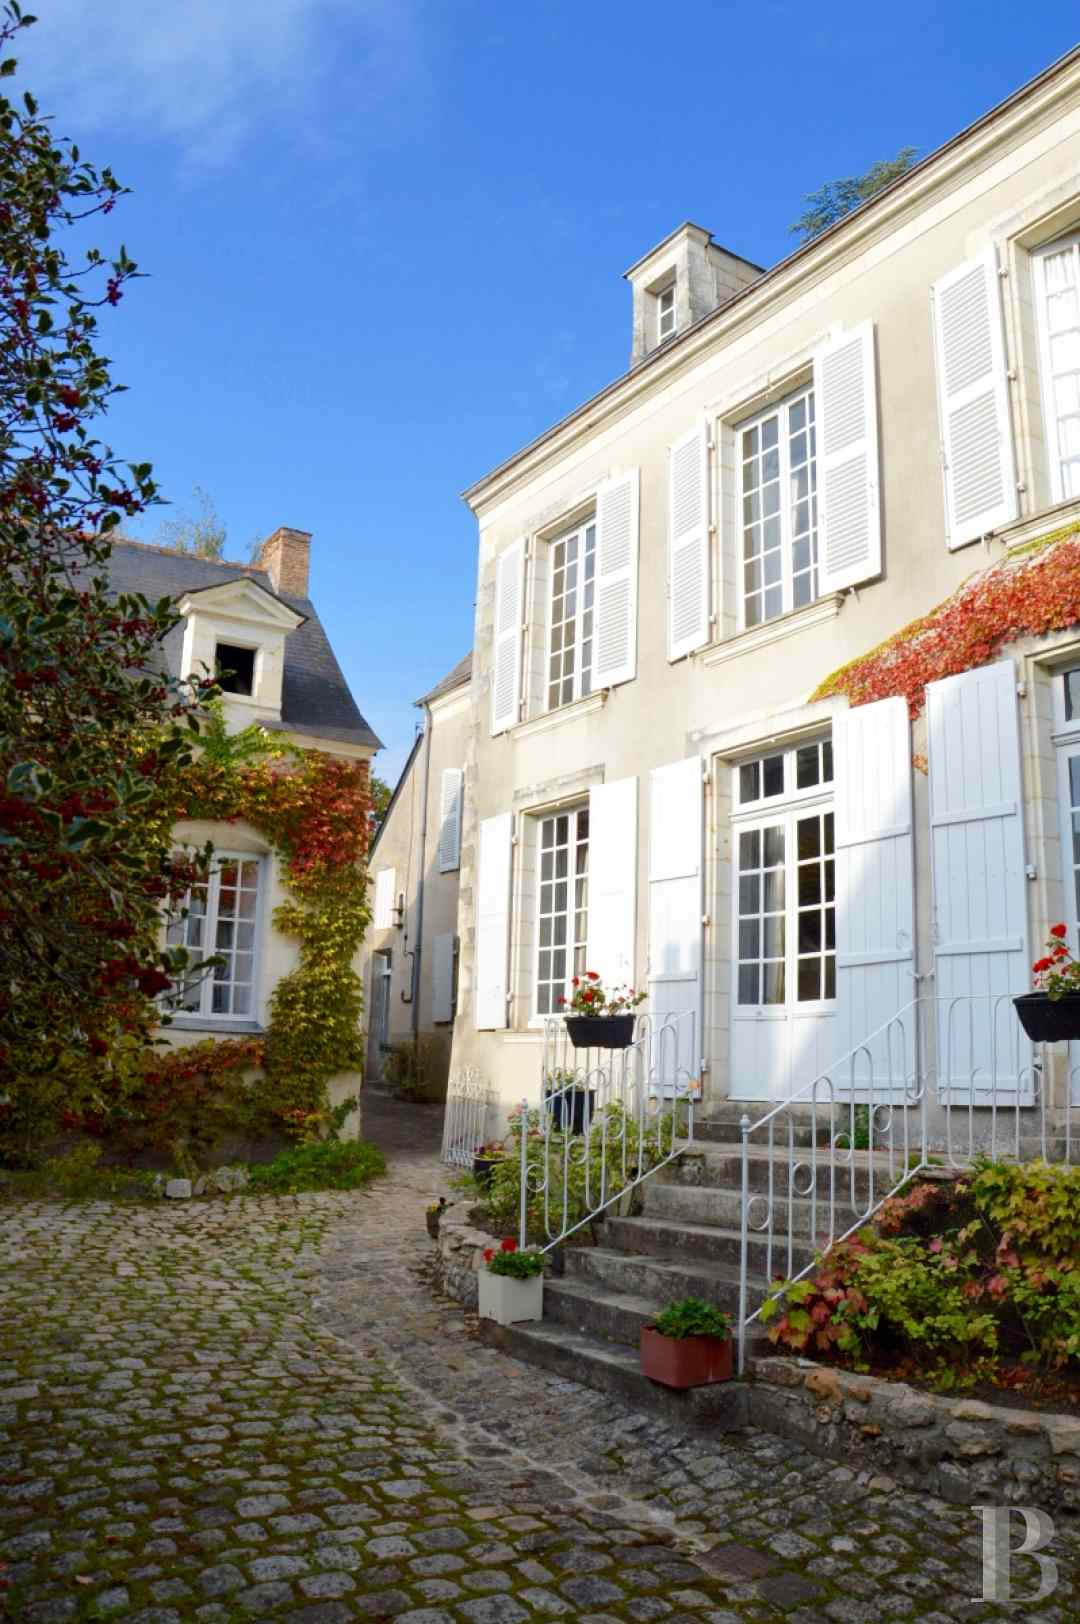 mansion houses for sale France pays de loire mansion houses - 3 zoom